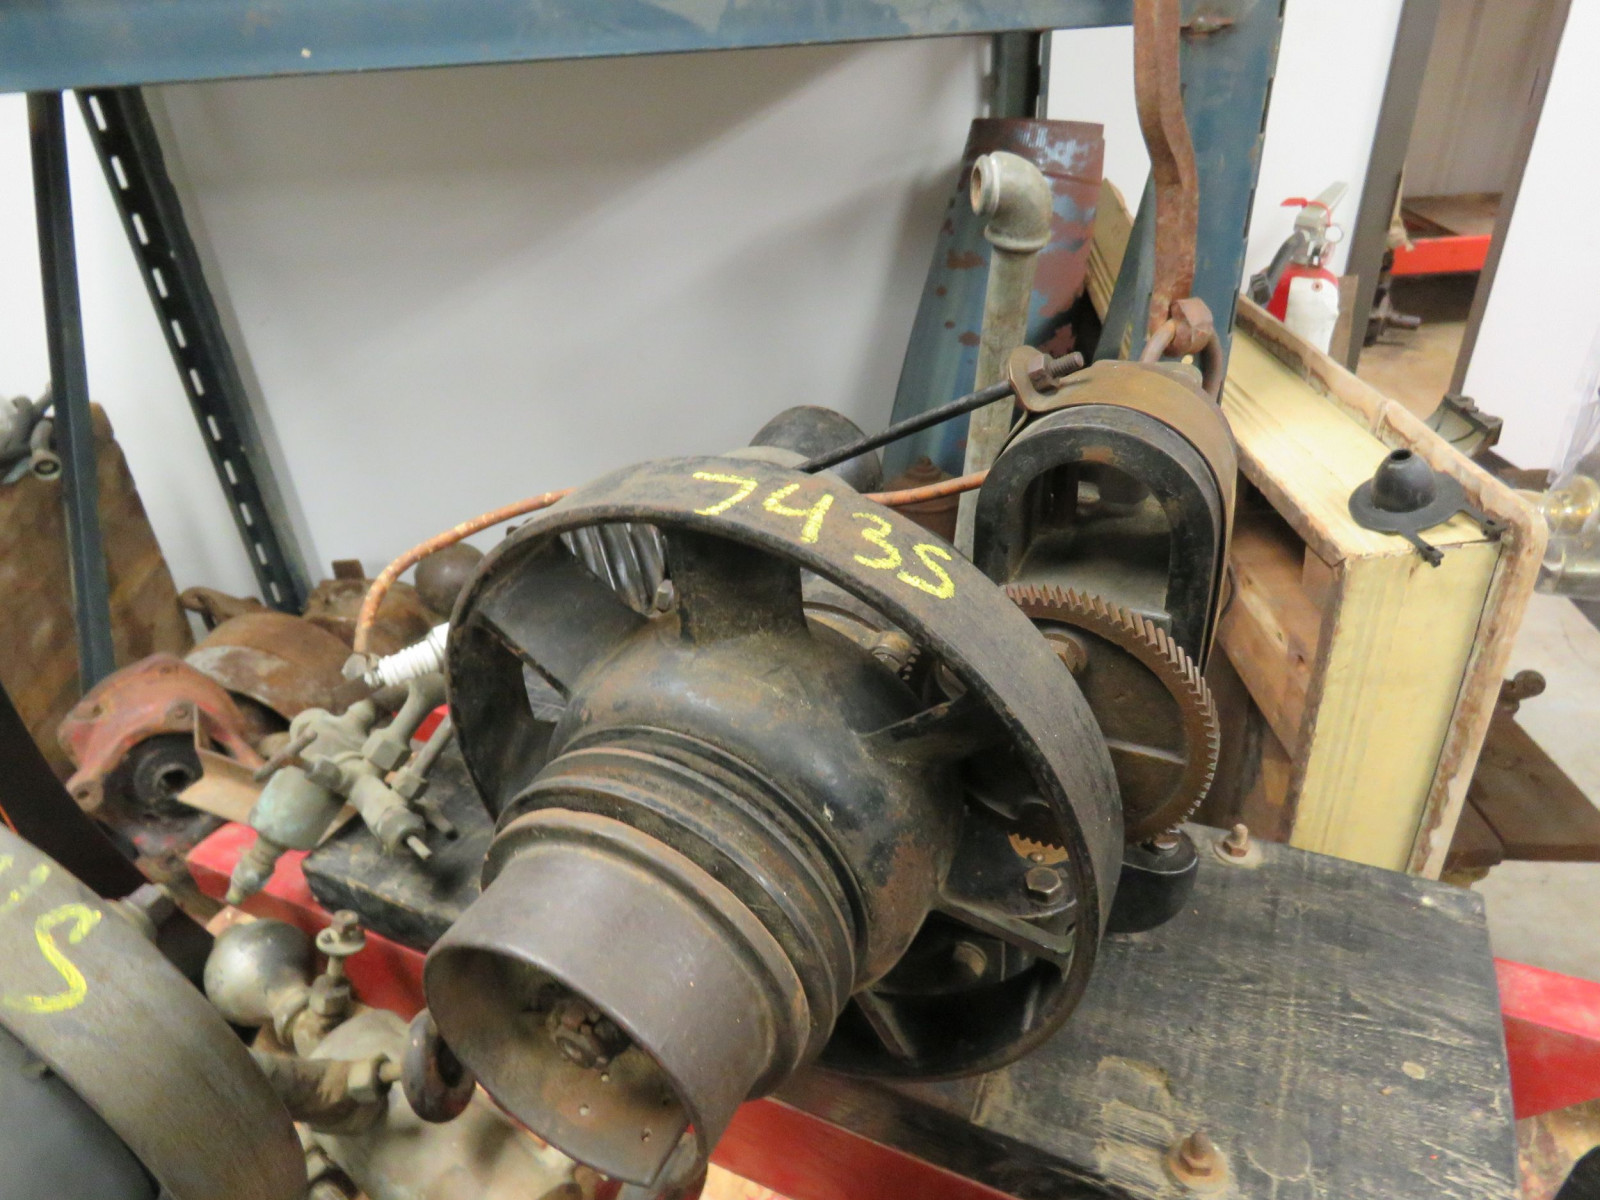 Associated 3/4hp Stationary Engine 4490 - Image 1